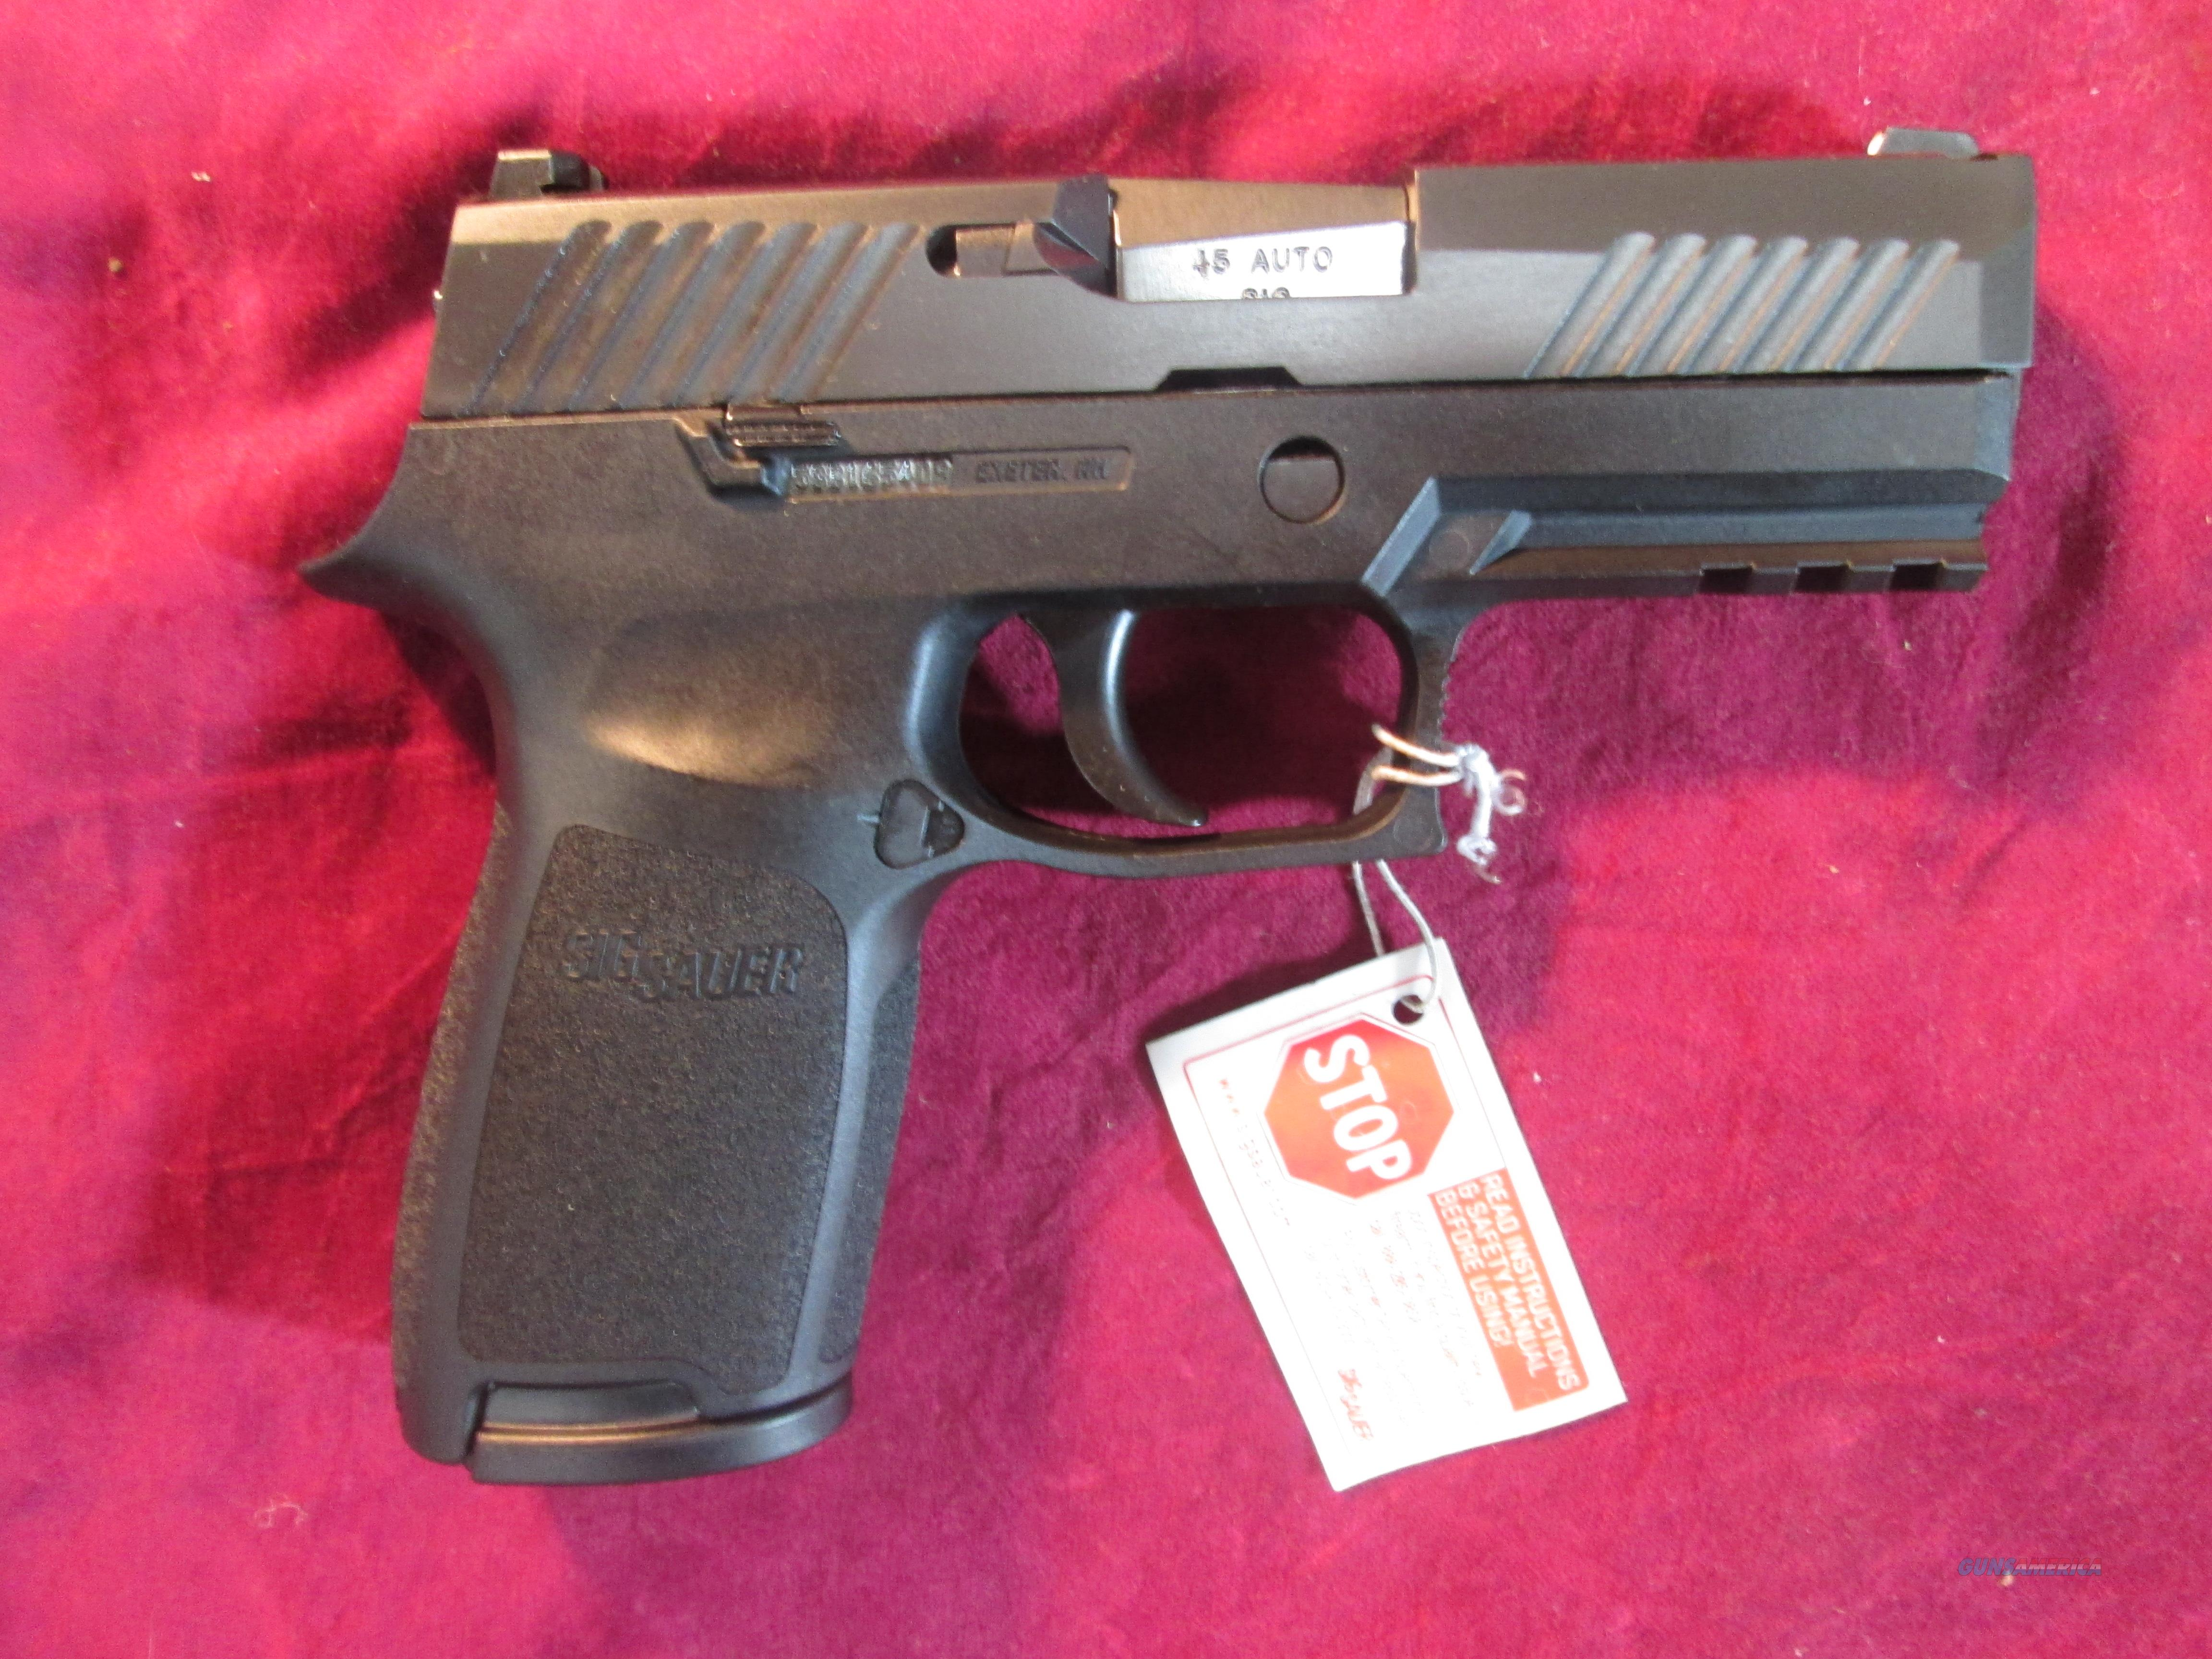 SIG SAUER P320 CARRY 45ACP STRIKER FIRED PISTOL CONTRAST SIGHTS NEW (320CA-45-B)   Guns > Pistols > Sig - Sauer/Sigarms Pistols > P320